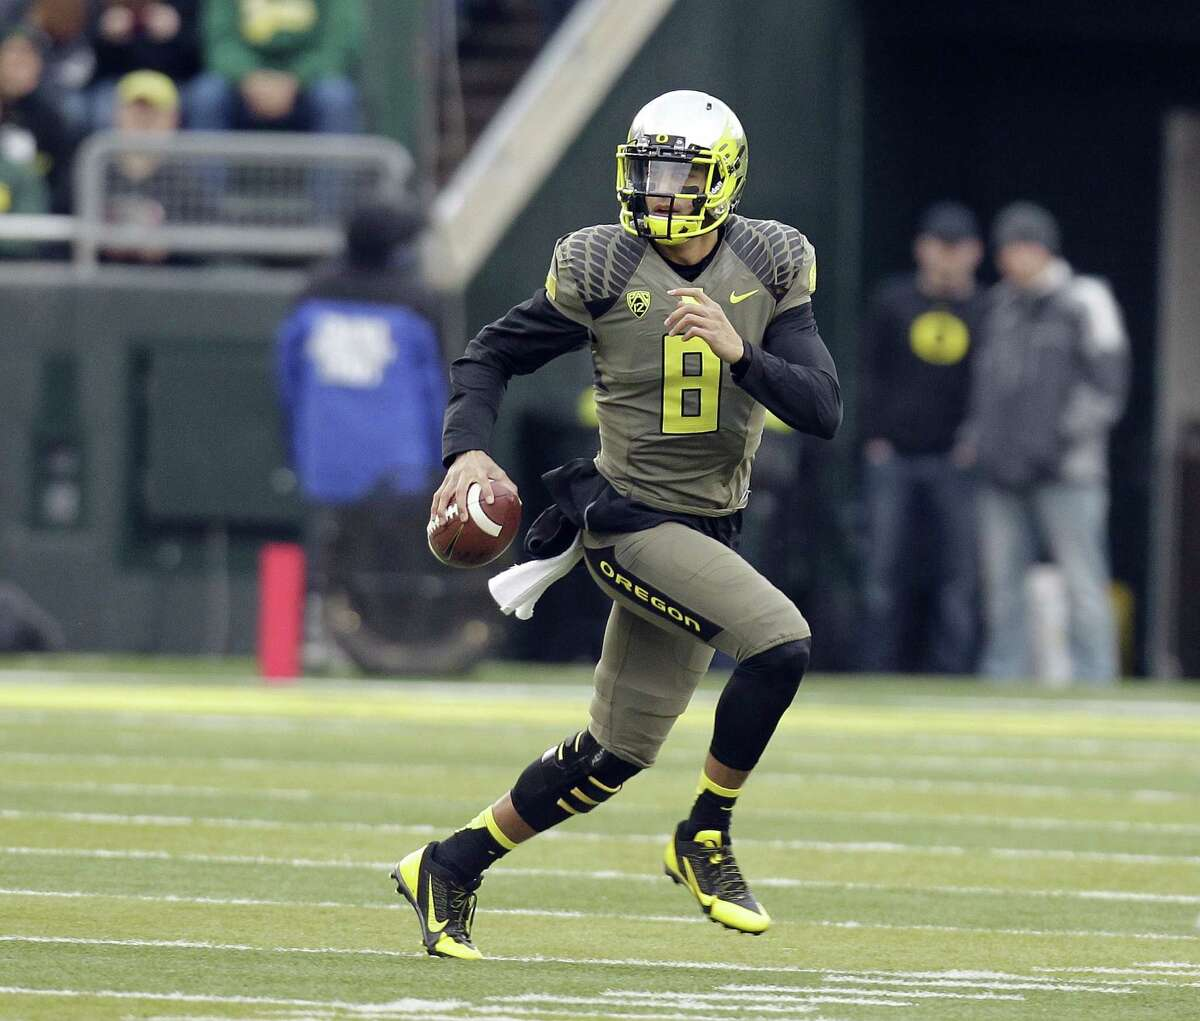 Marcus Mariota, a quarterback projected to go ahead of Johnny Manziel in the first round, could return to Oregon and make Manziel more desirable.